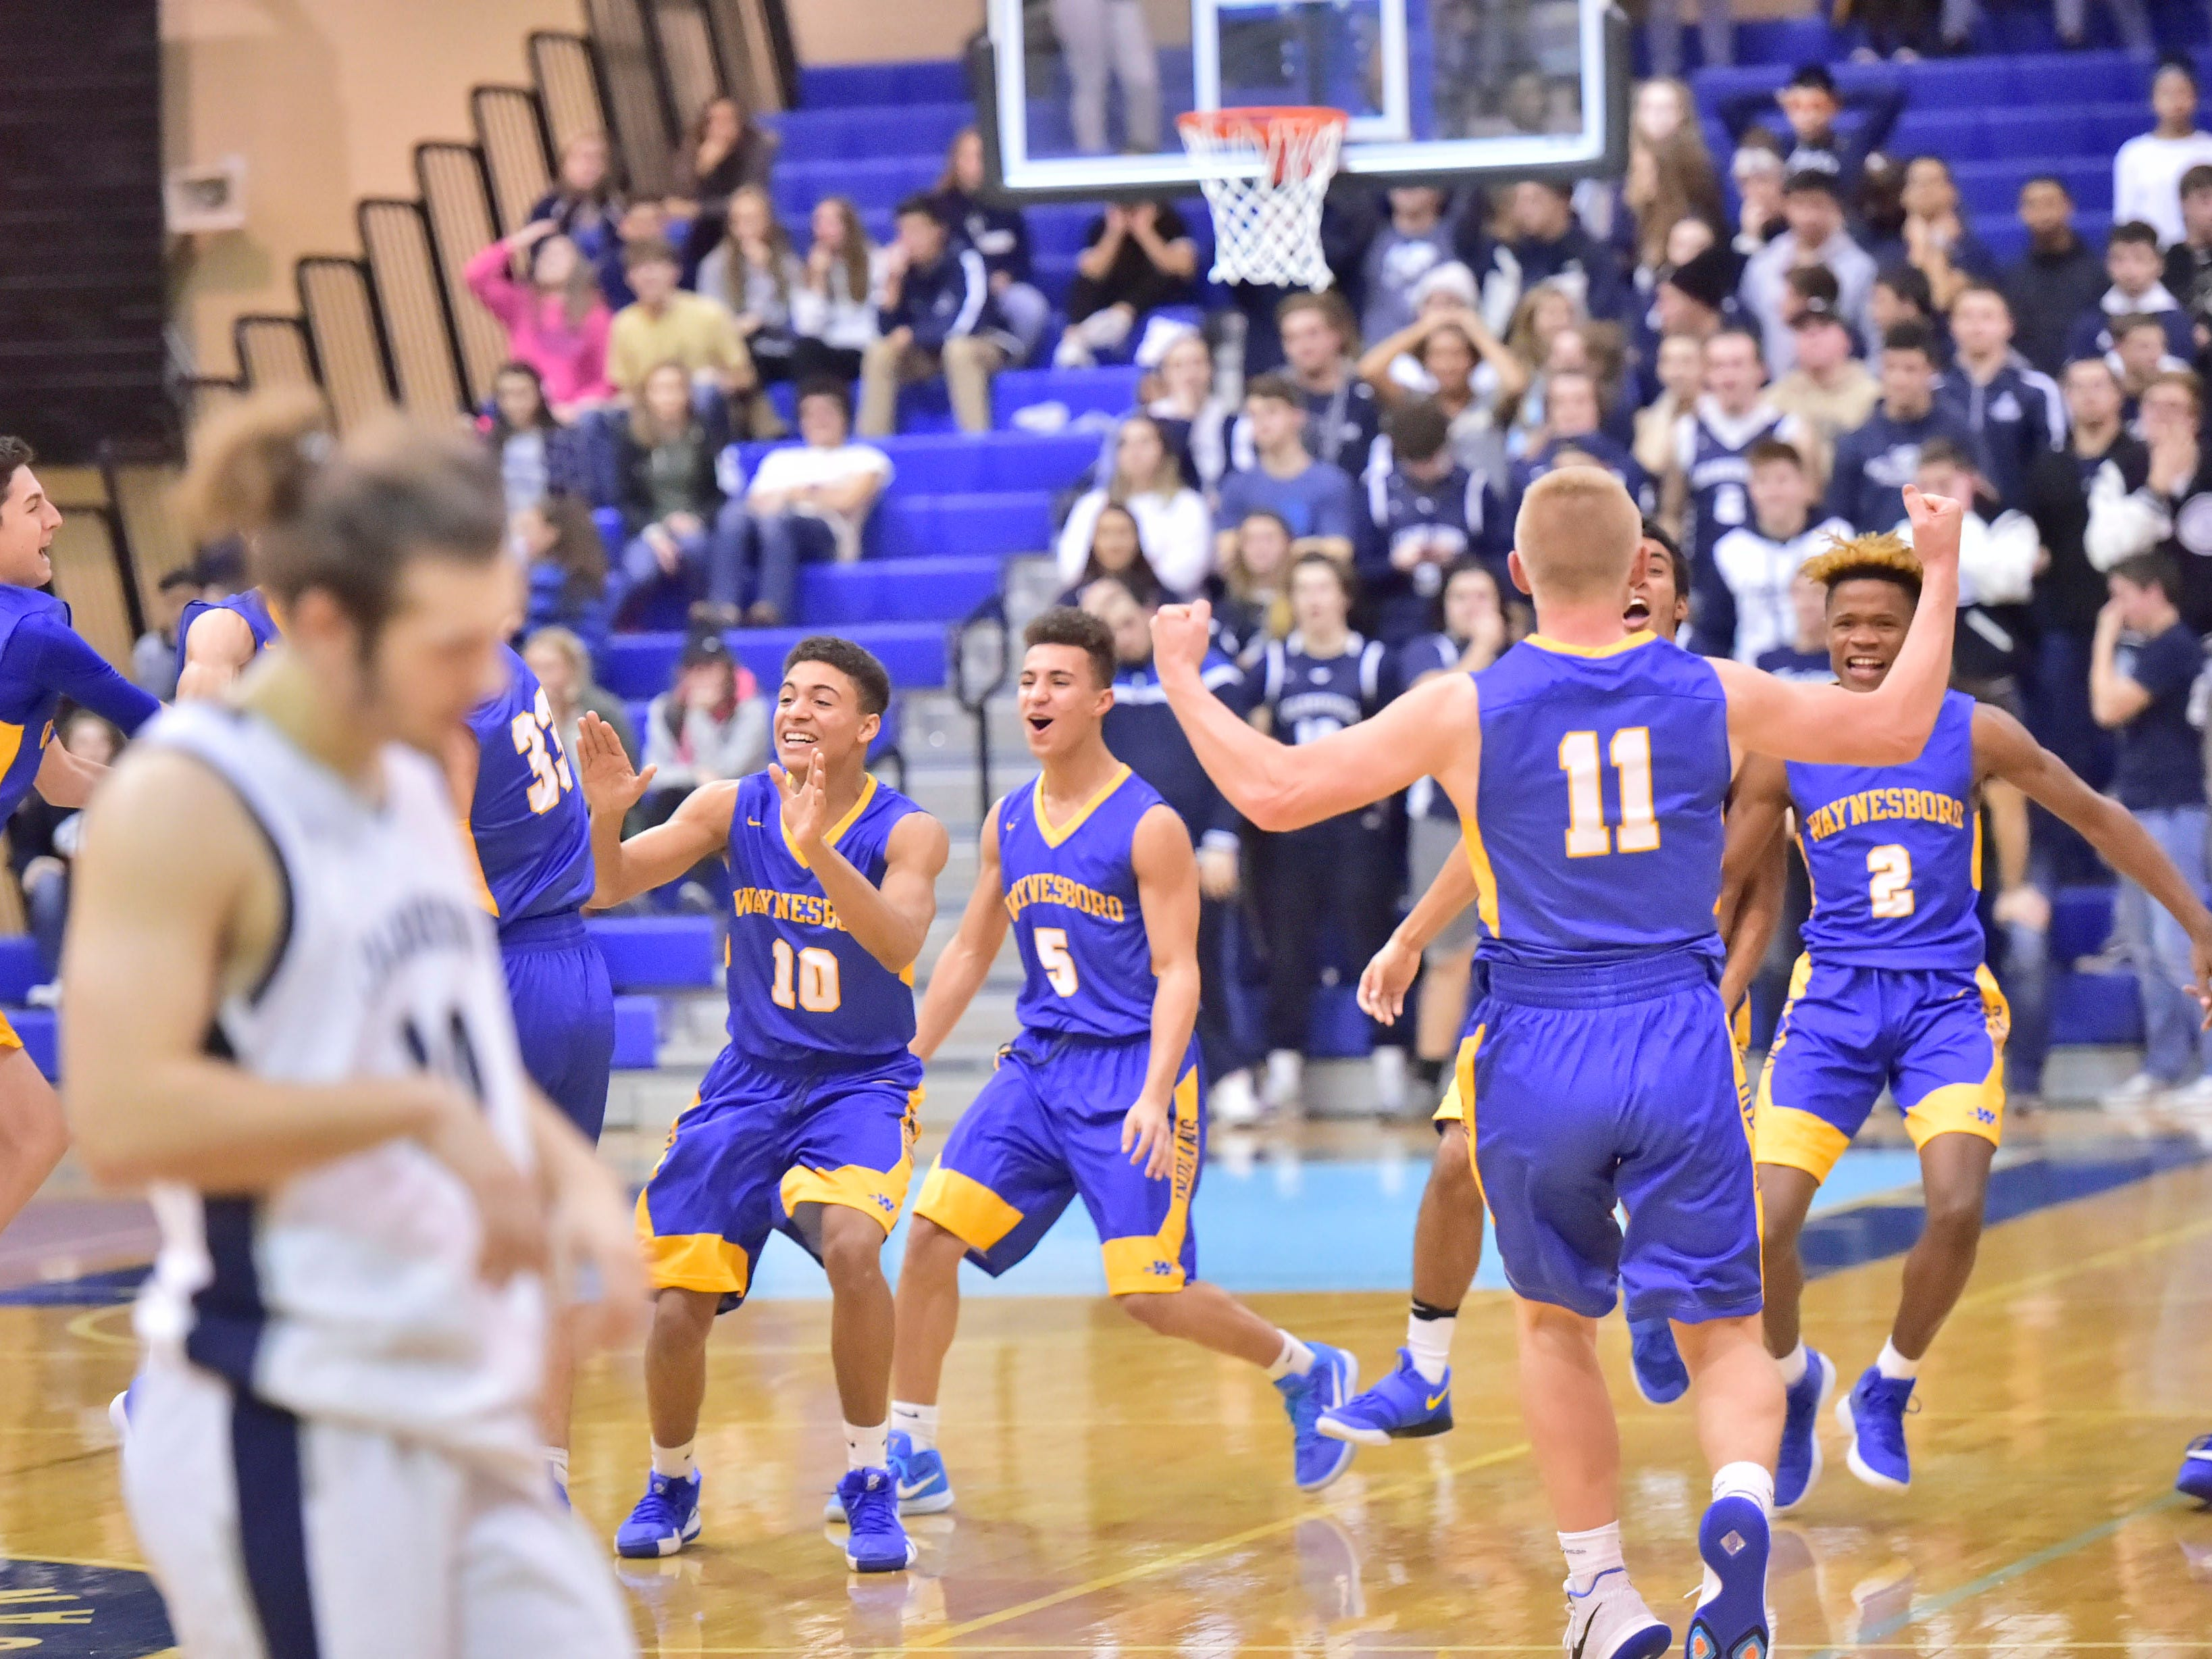 Waynesboro teammates celebrate after defeating Chambersburg 42-39. Chambersburg played Waynesboro during the finals at Franklin County Tip-Off Tournament, Saturday, Dec. 8, 2018.